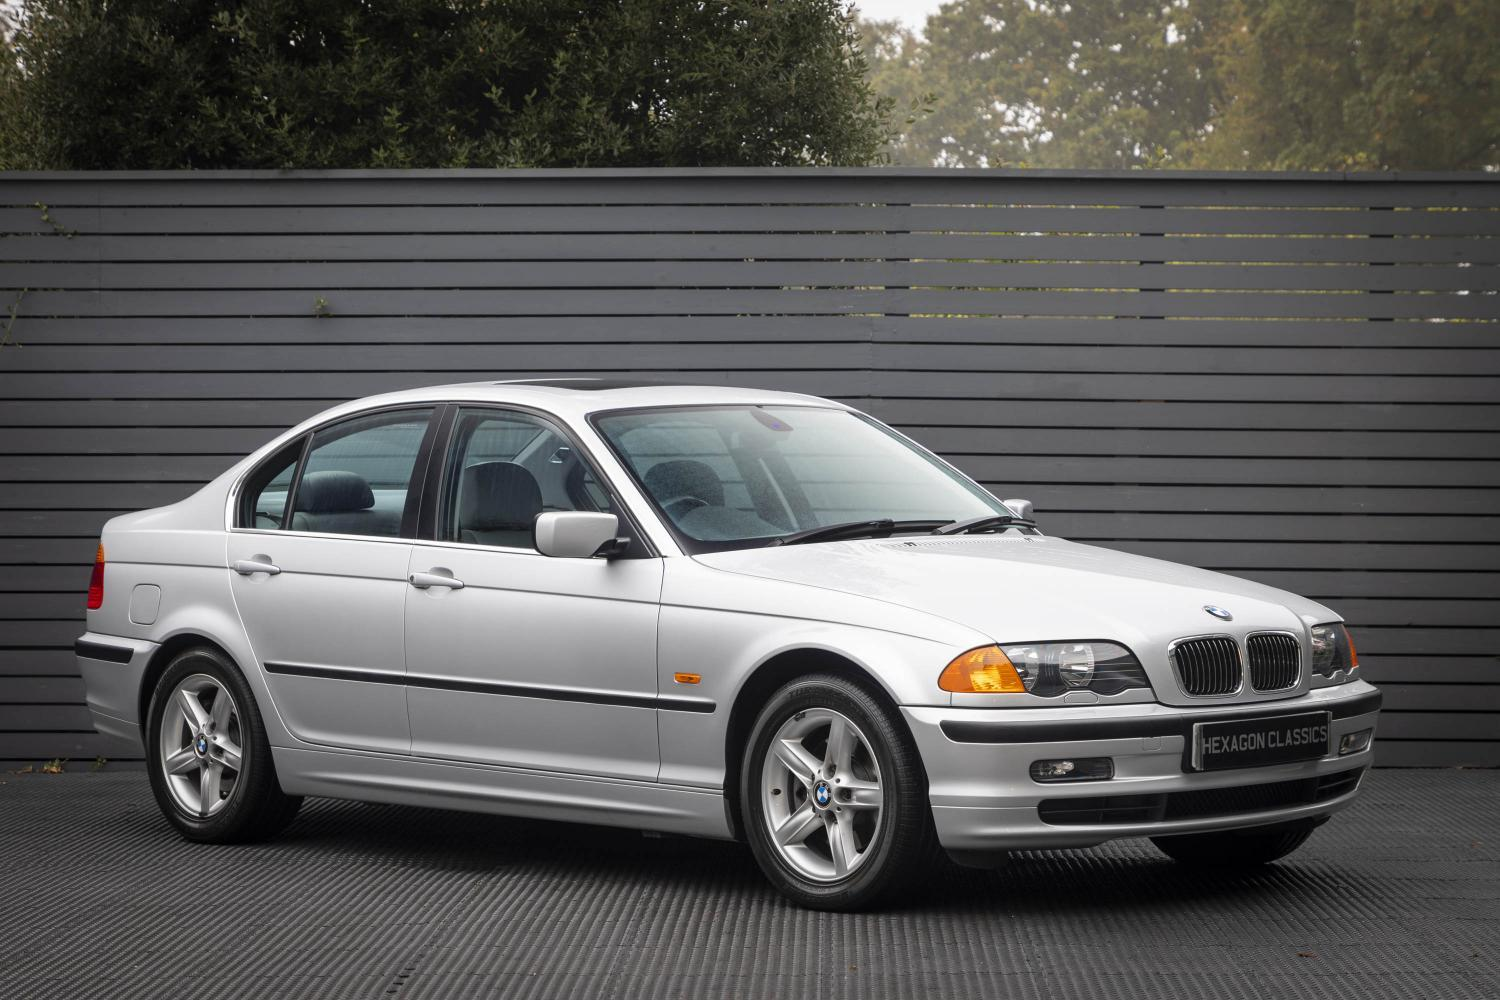 Bmw 328i Se Saloon E46 1999 Hexagon Classic And Modern Cars